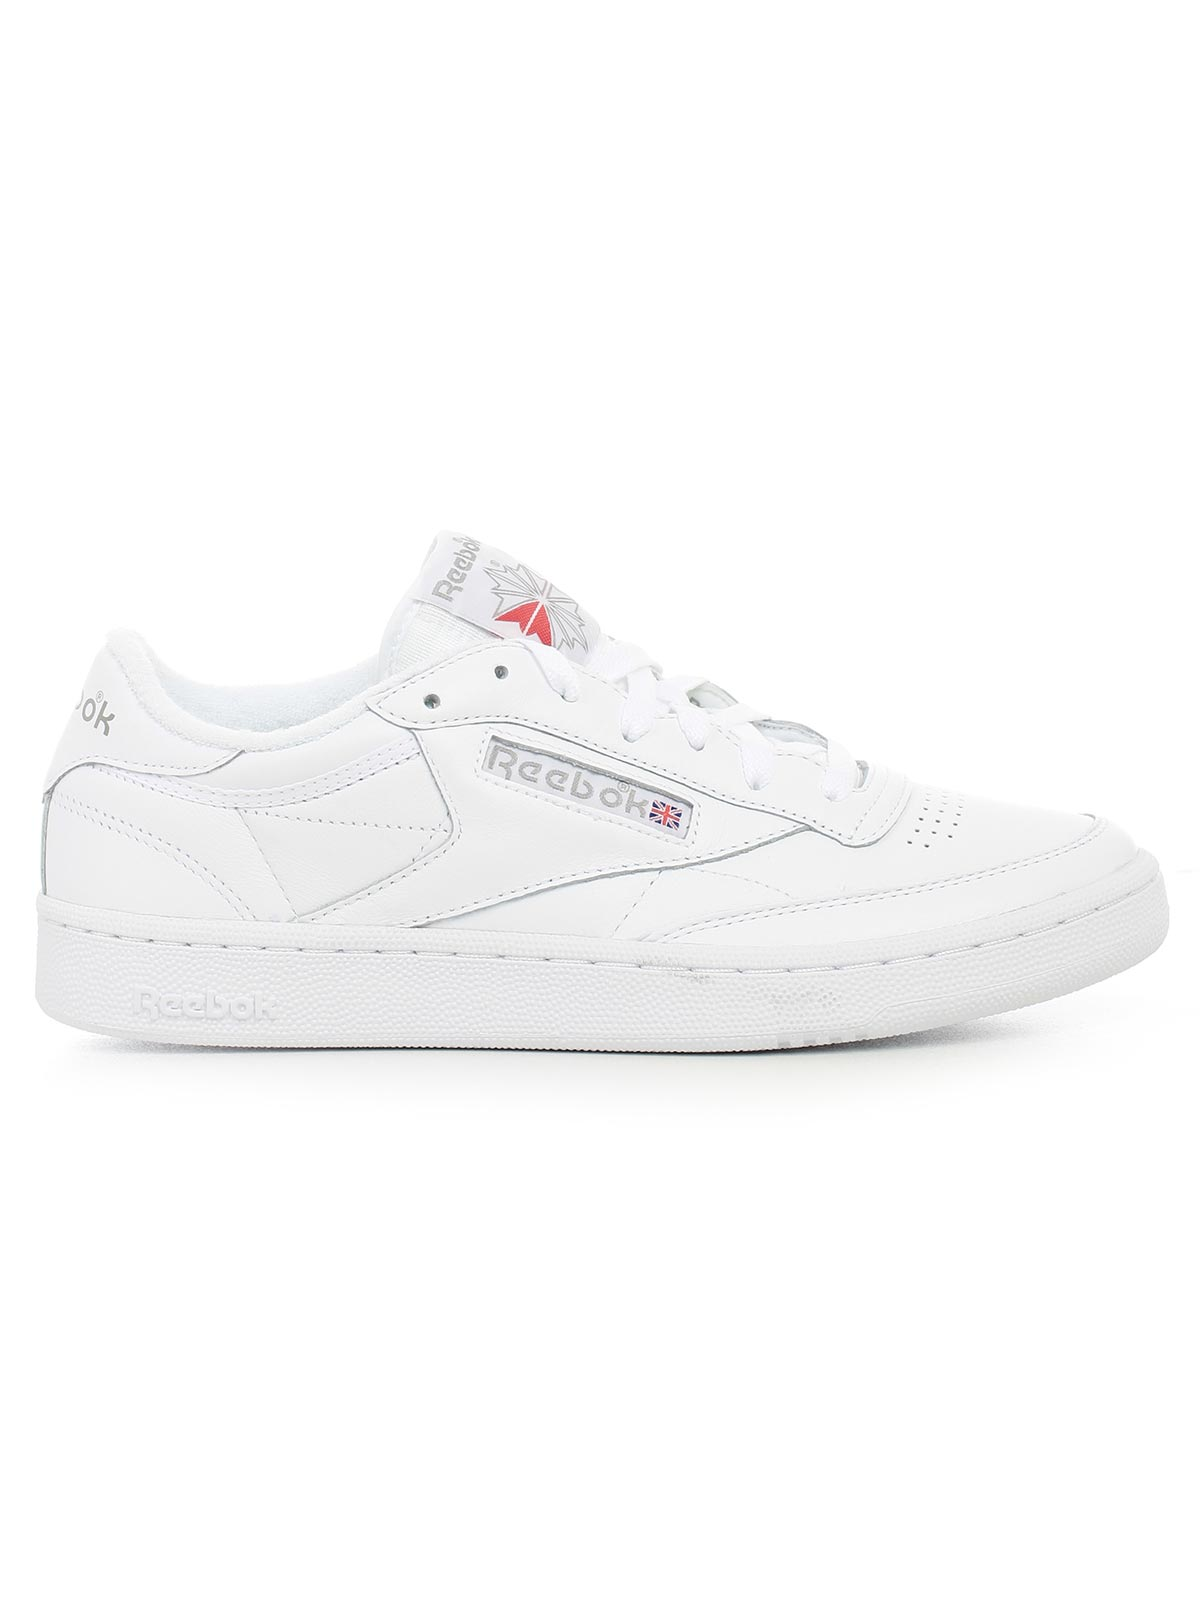 Picture of Reebok Sneakers